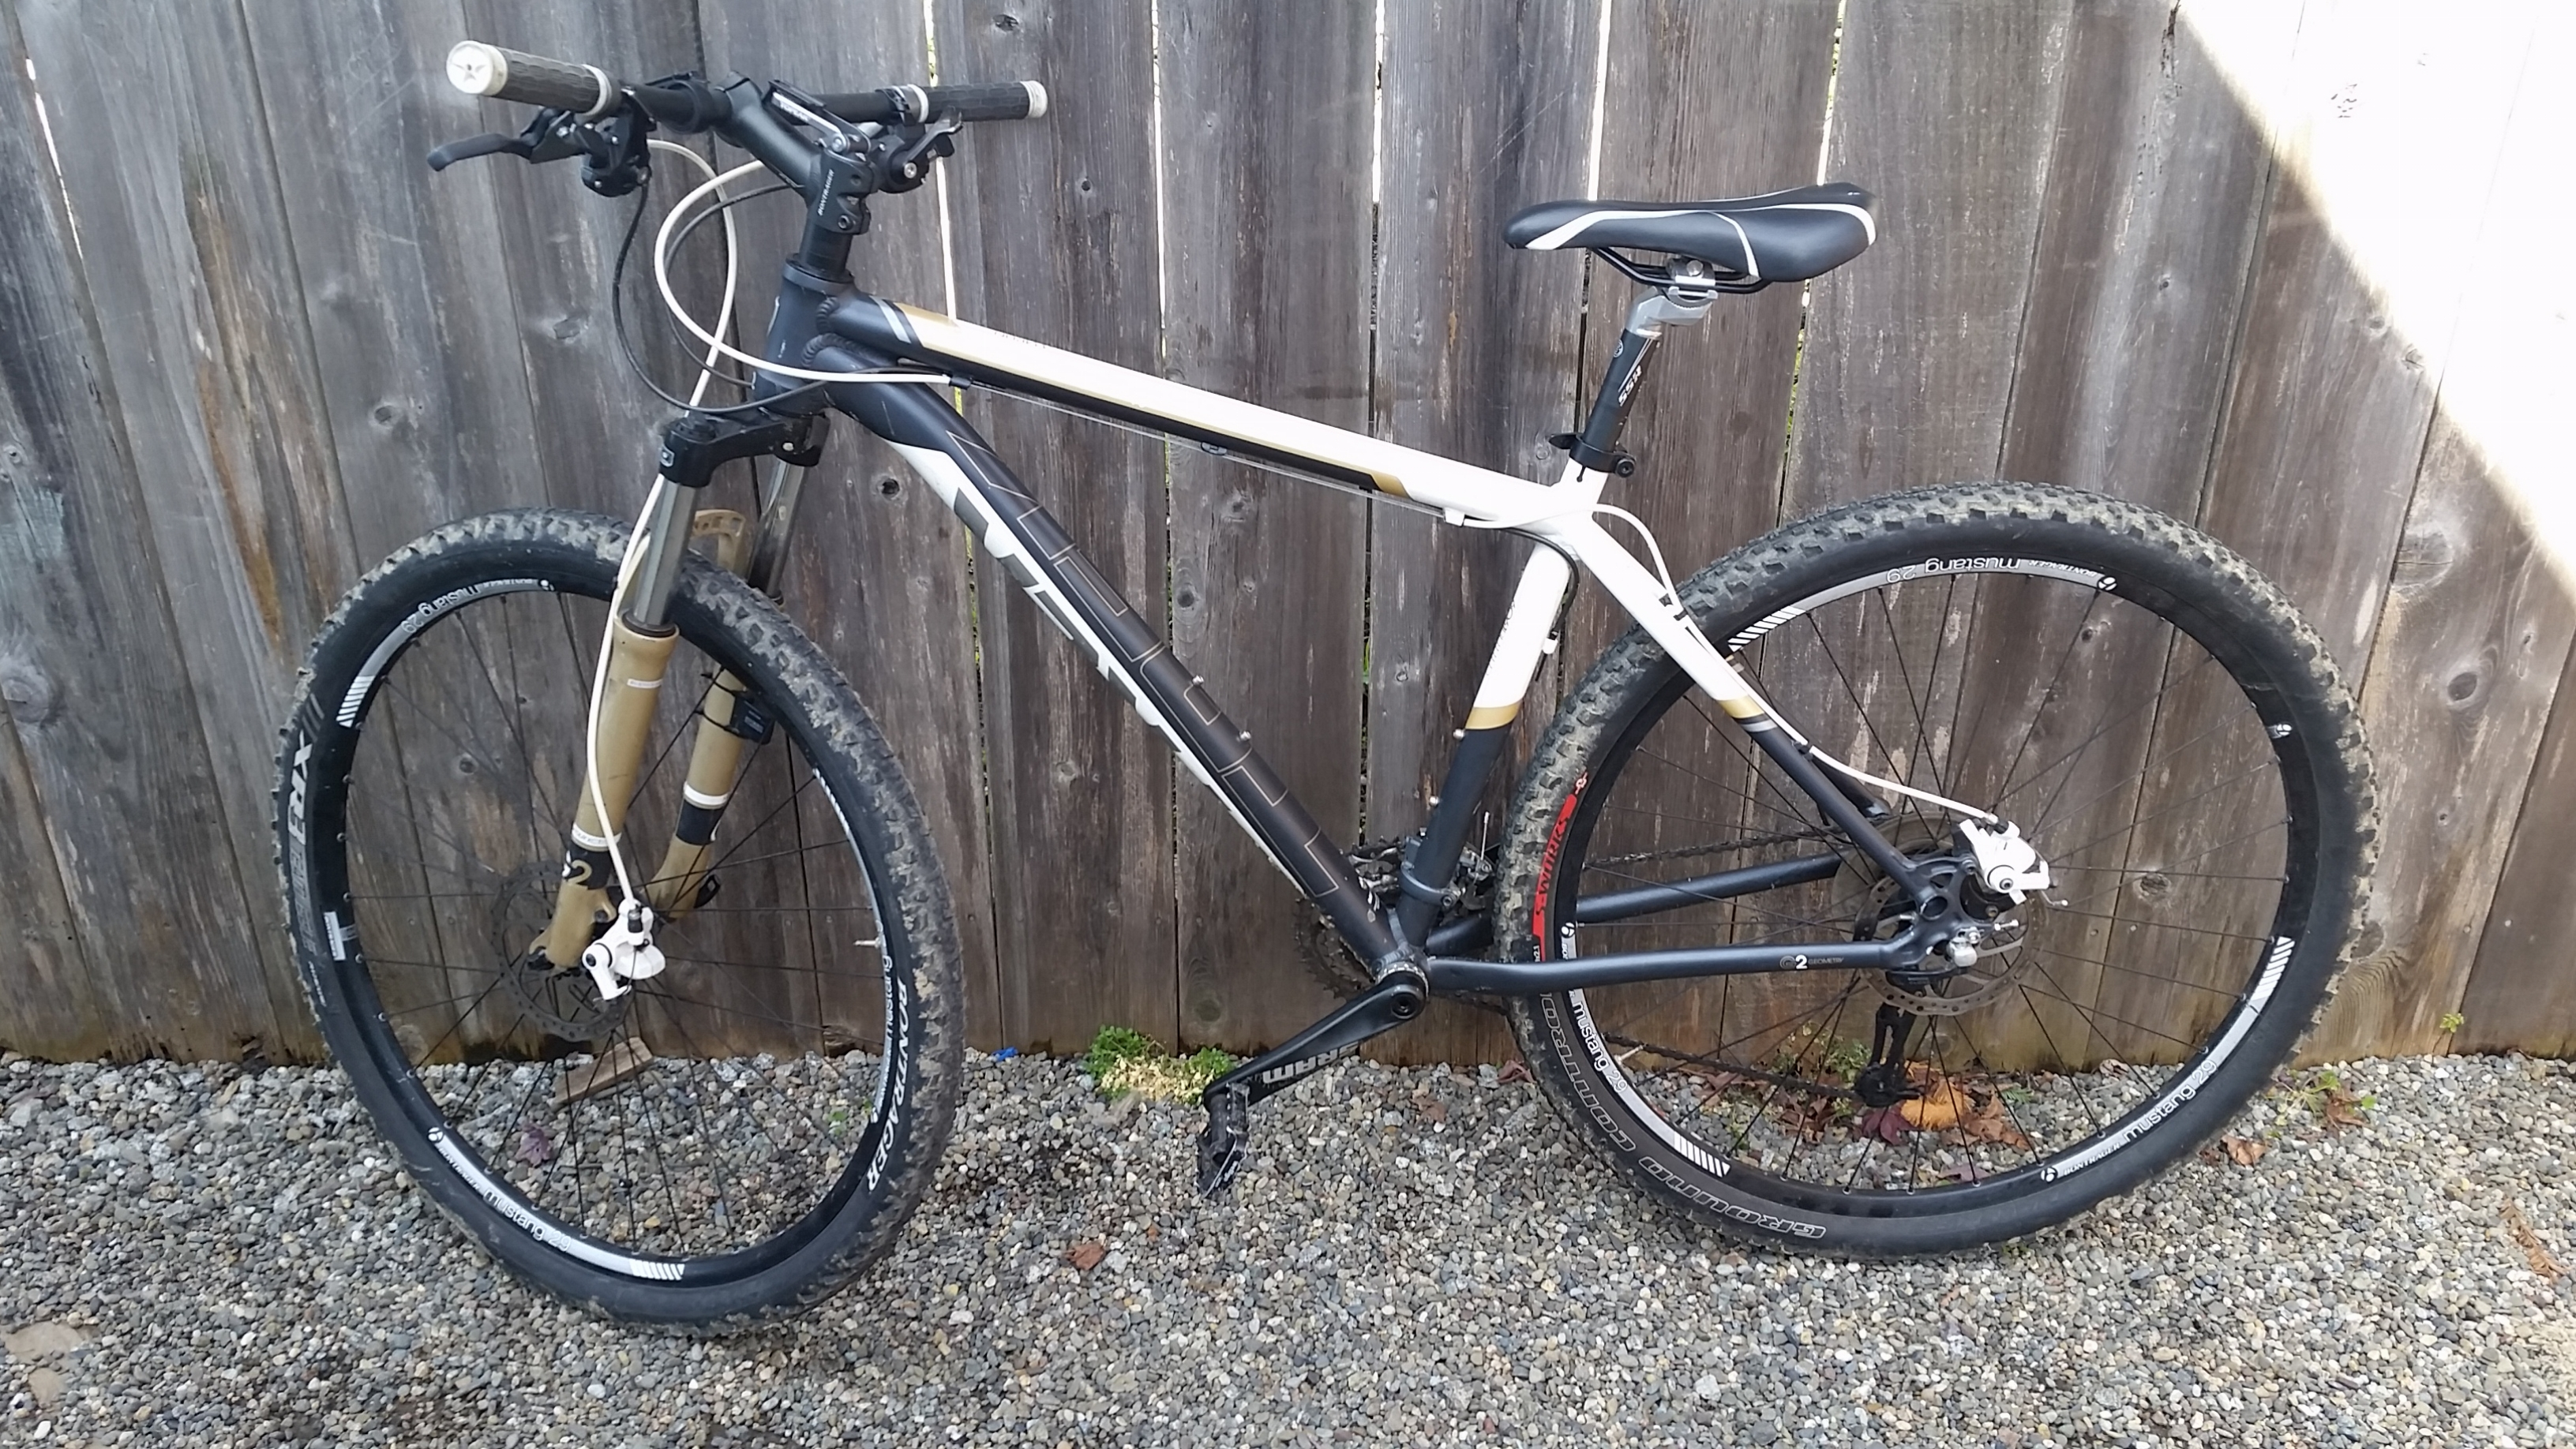 835655ab201 Donor Bike: 2013 Trek Marlin 29er with Mechanical disc brakes (160mm)